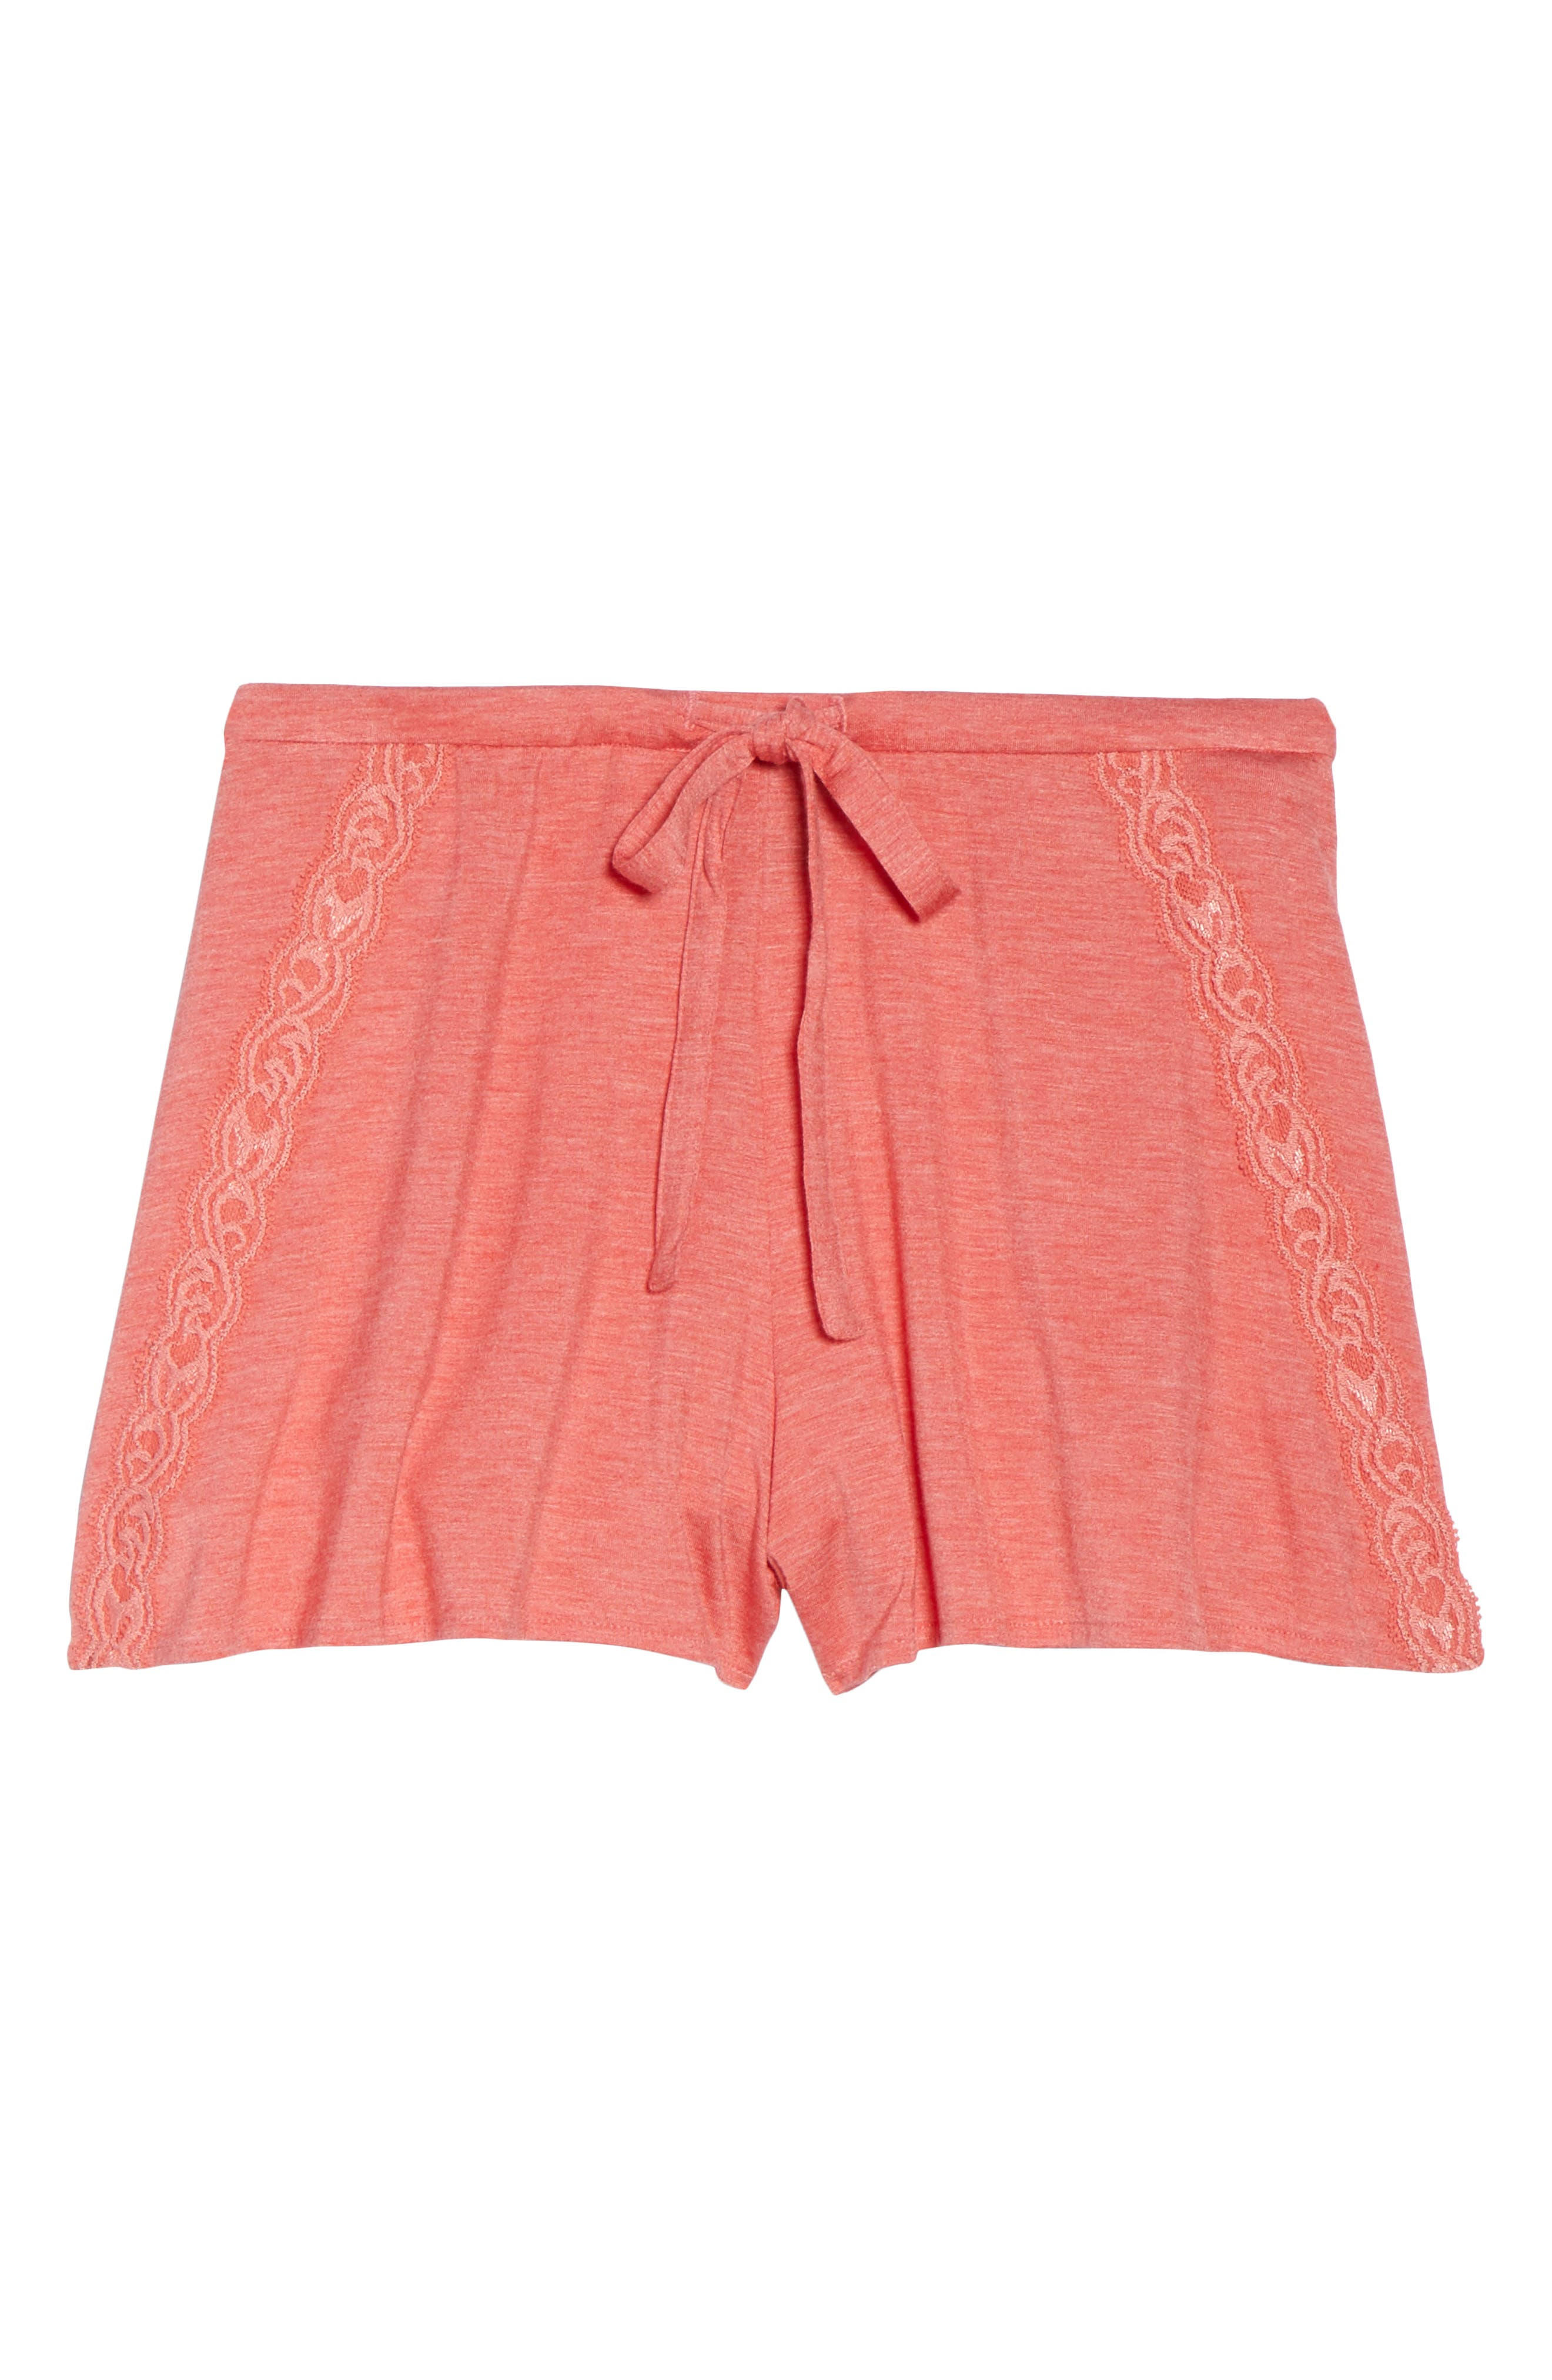 Feathers Essential Pajama Shorts,                             Alternate thumbnail 12, color,